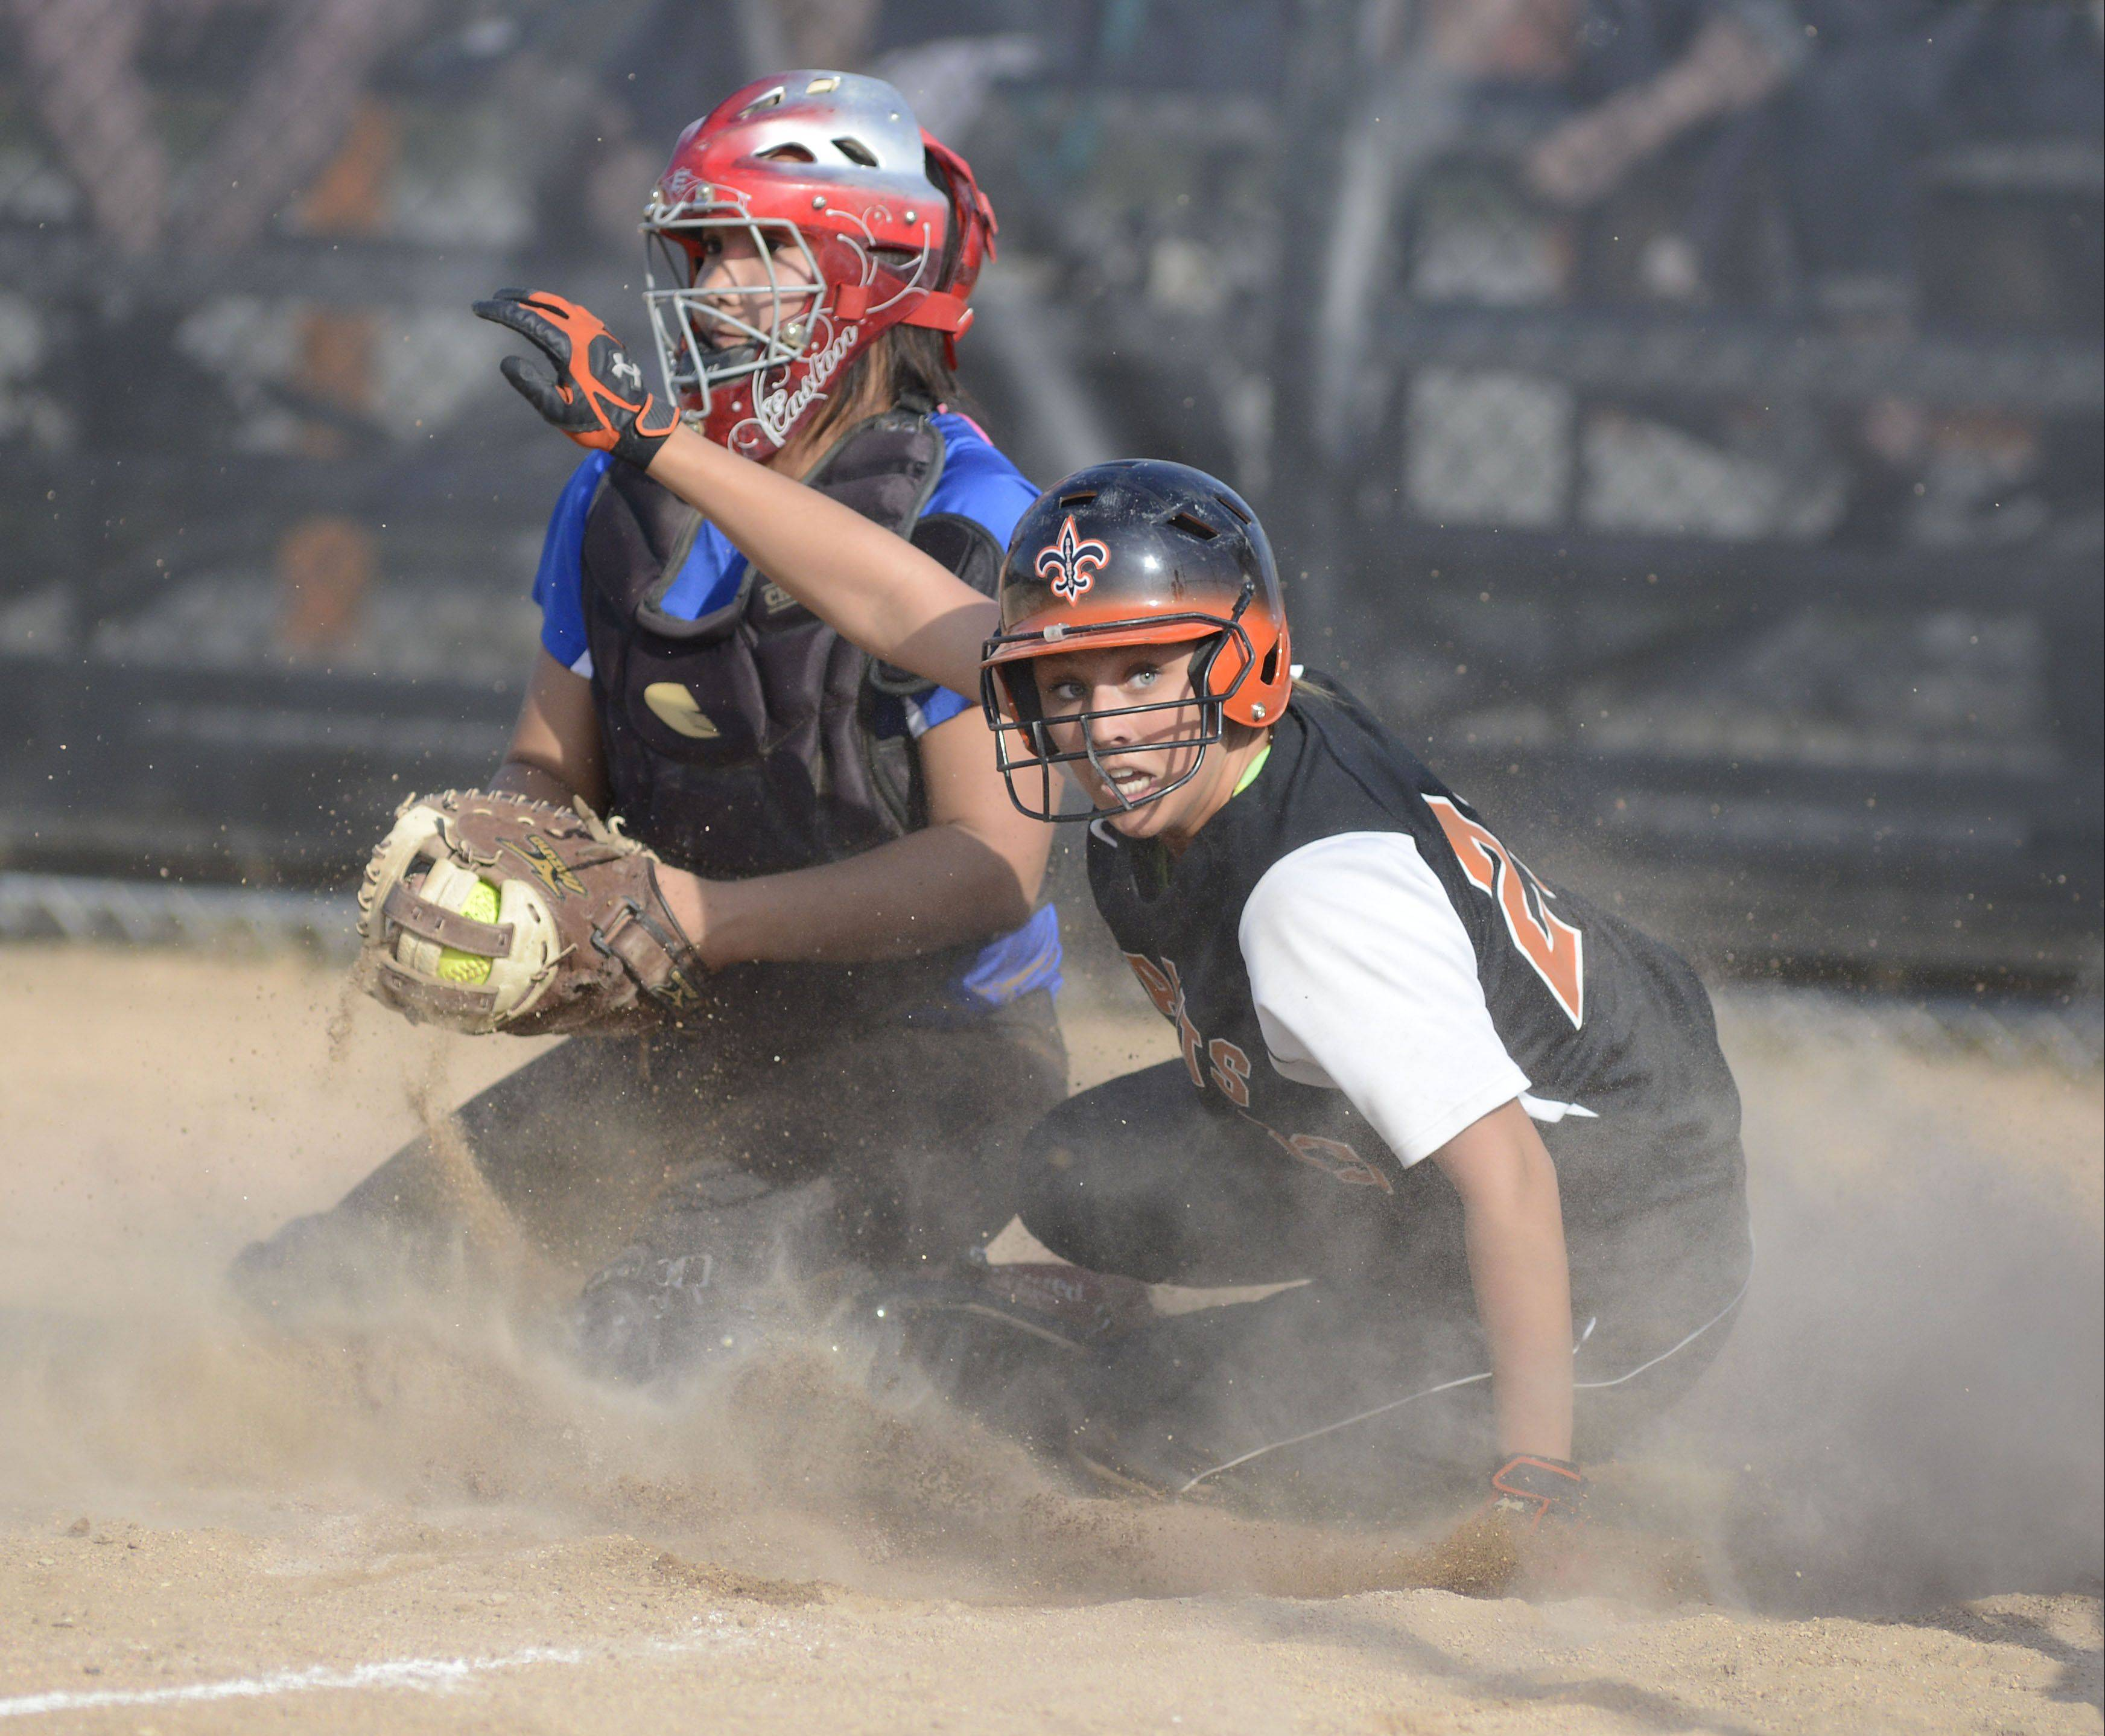 St. Charles East's Mackenzie Meadows is safe on home plate from Geneva's Kelly Gordon in the fourth inning on Tuesday, April 30.